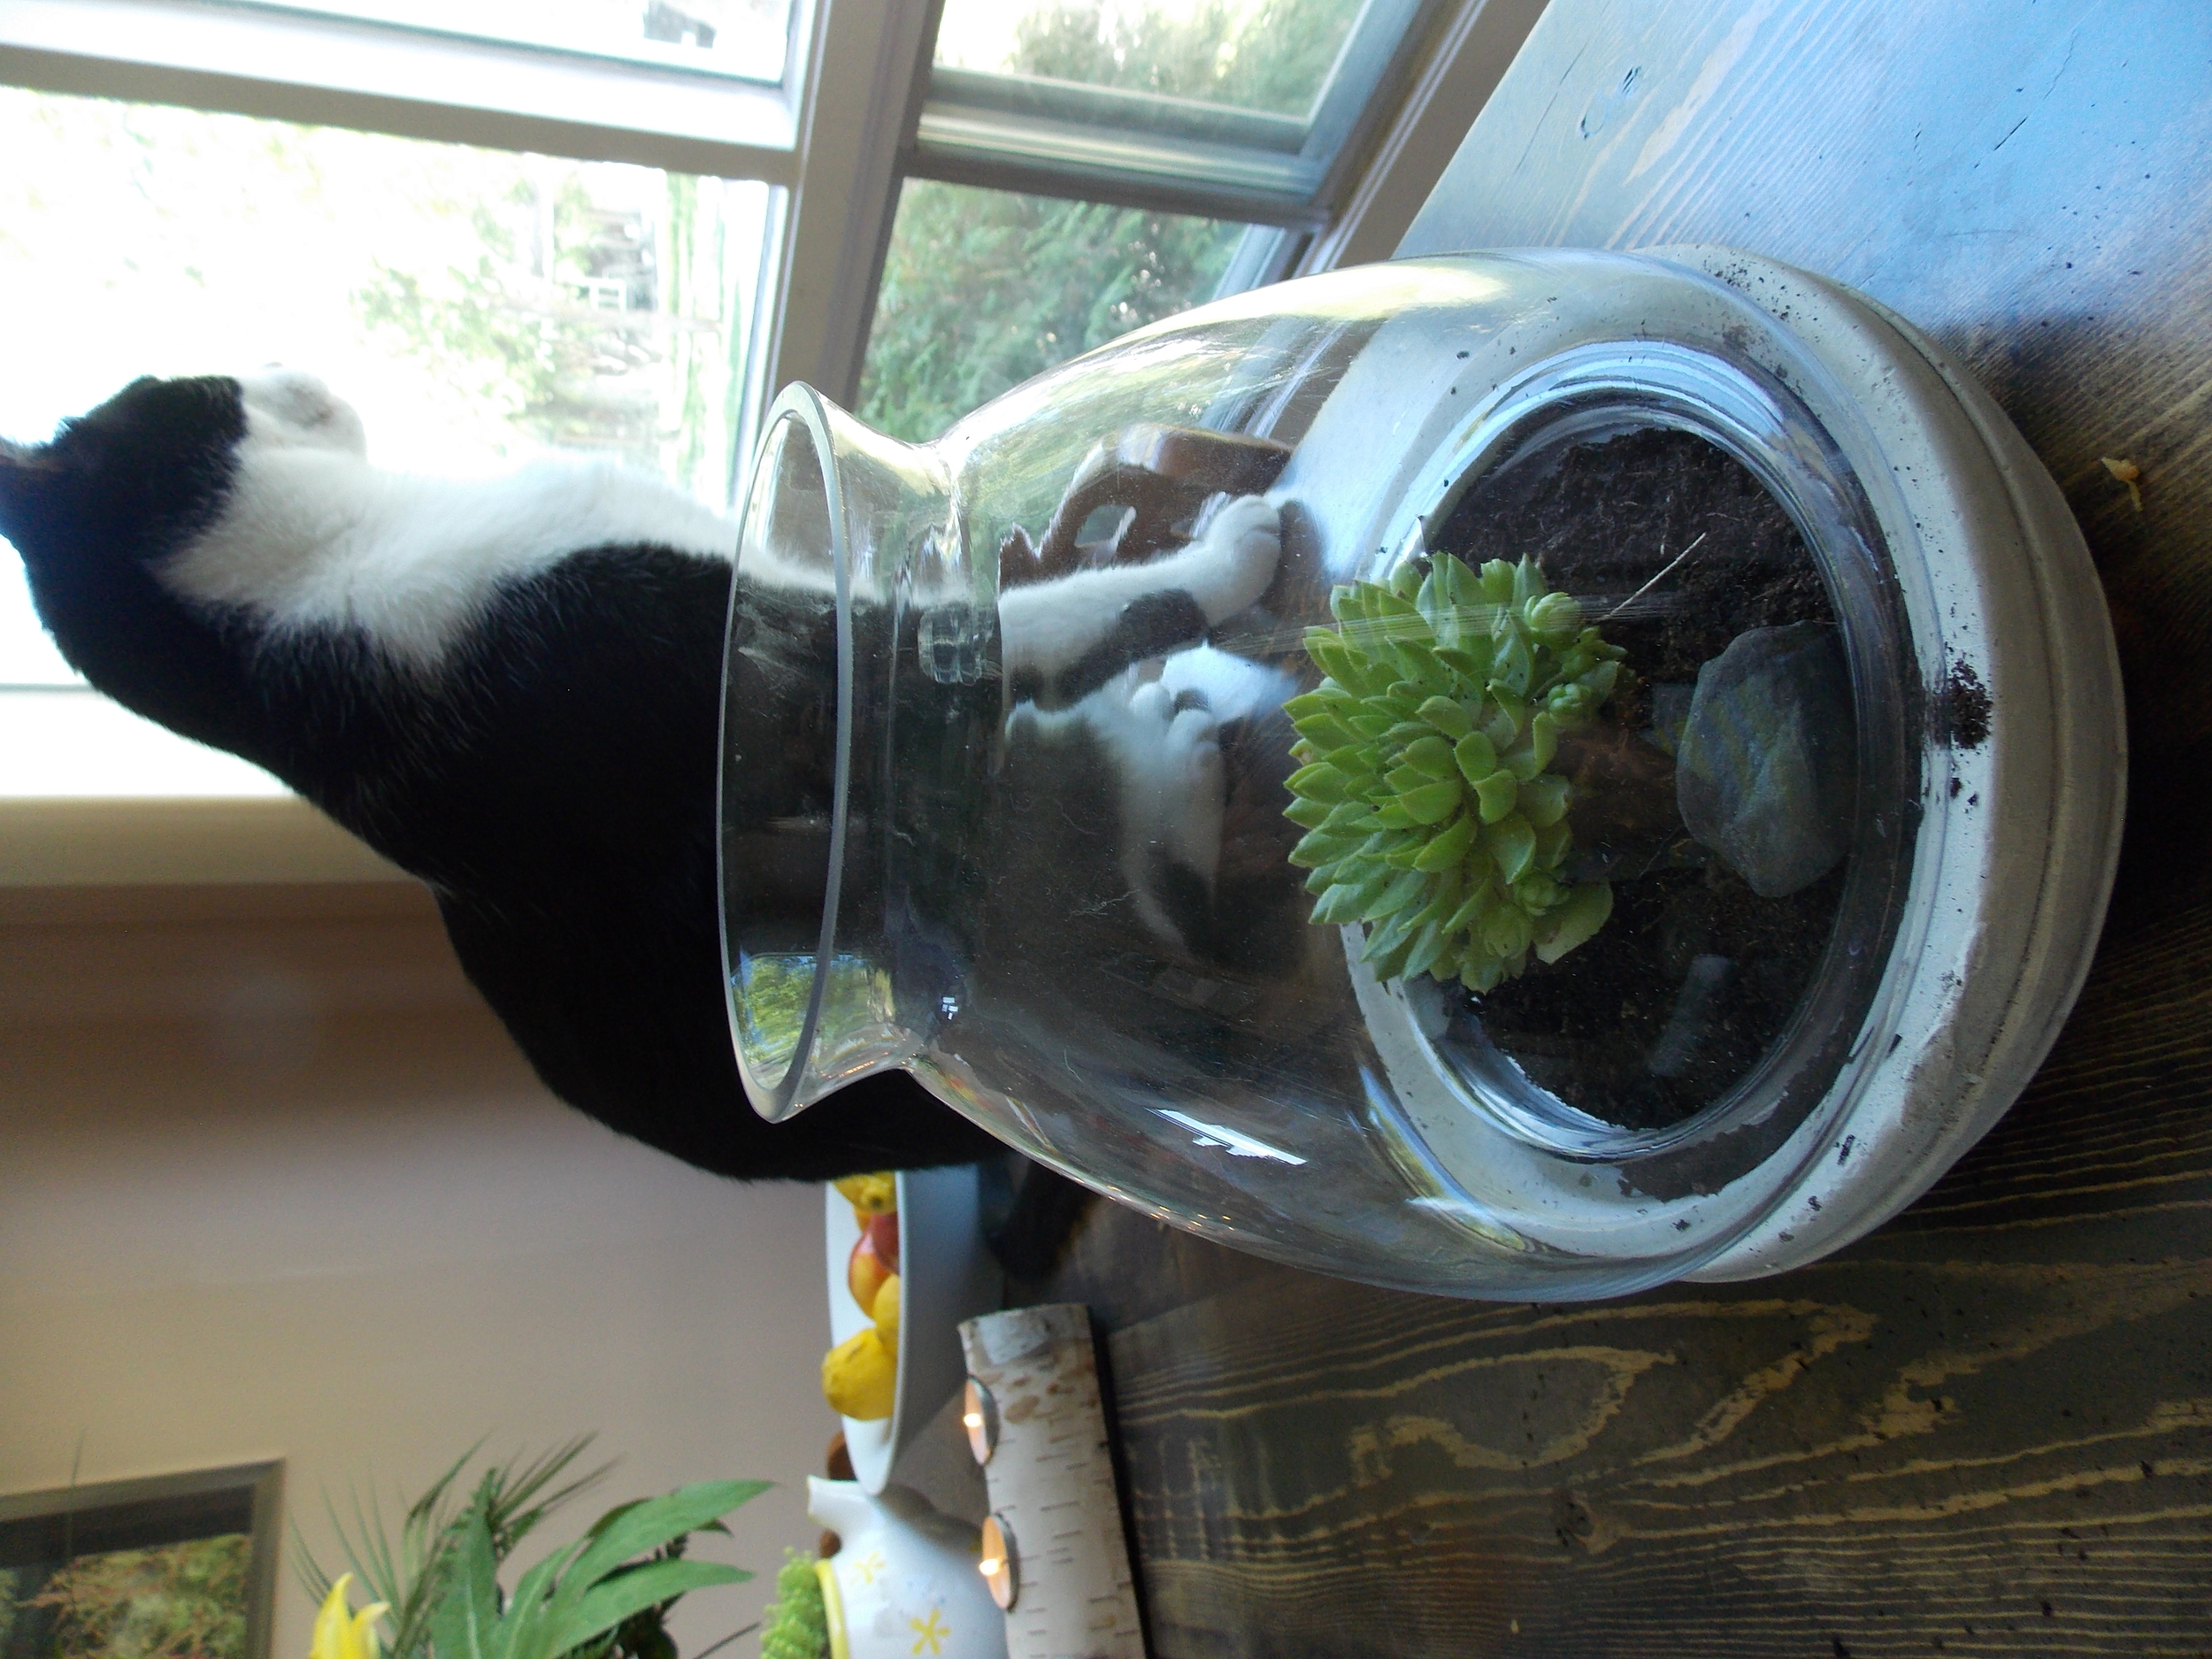 Station your new plant where the cat can guard it best.